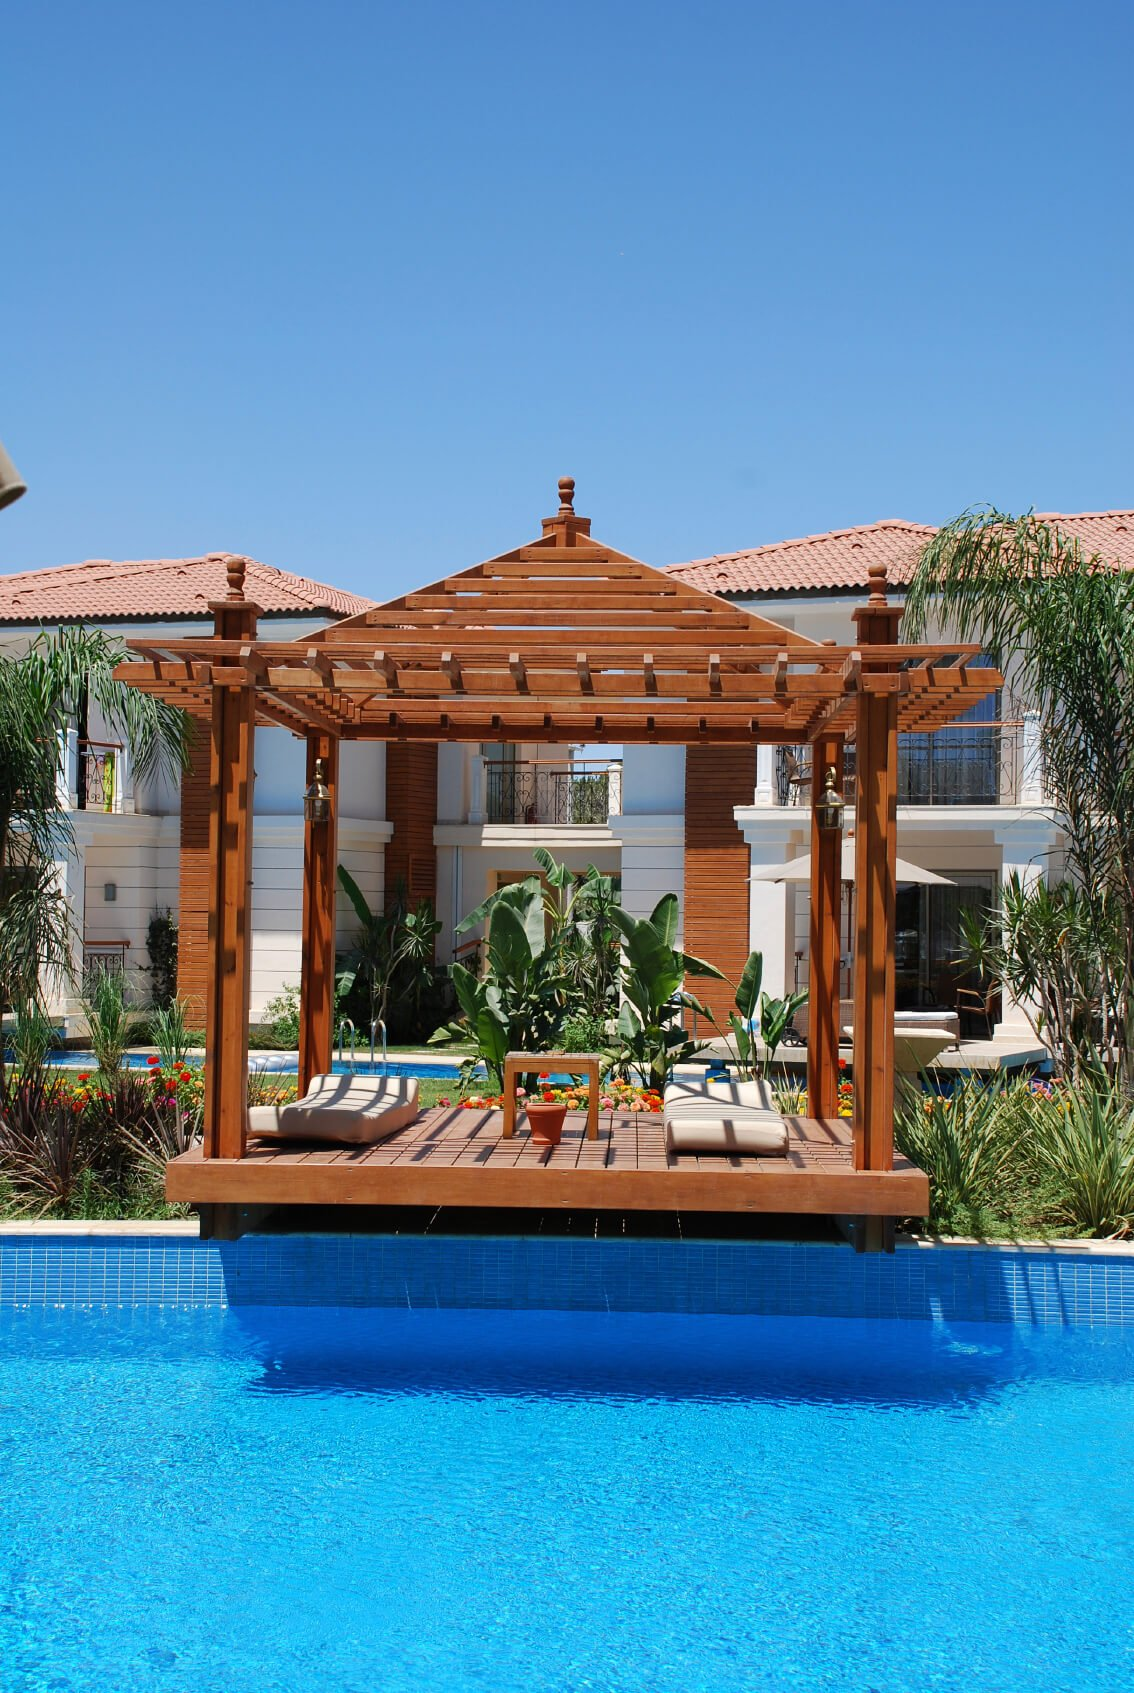 This gazebo with relaxed patio furniture has an edge that hangs over the pool. You can dive right into the water from there when you are ready to jump back in.